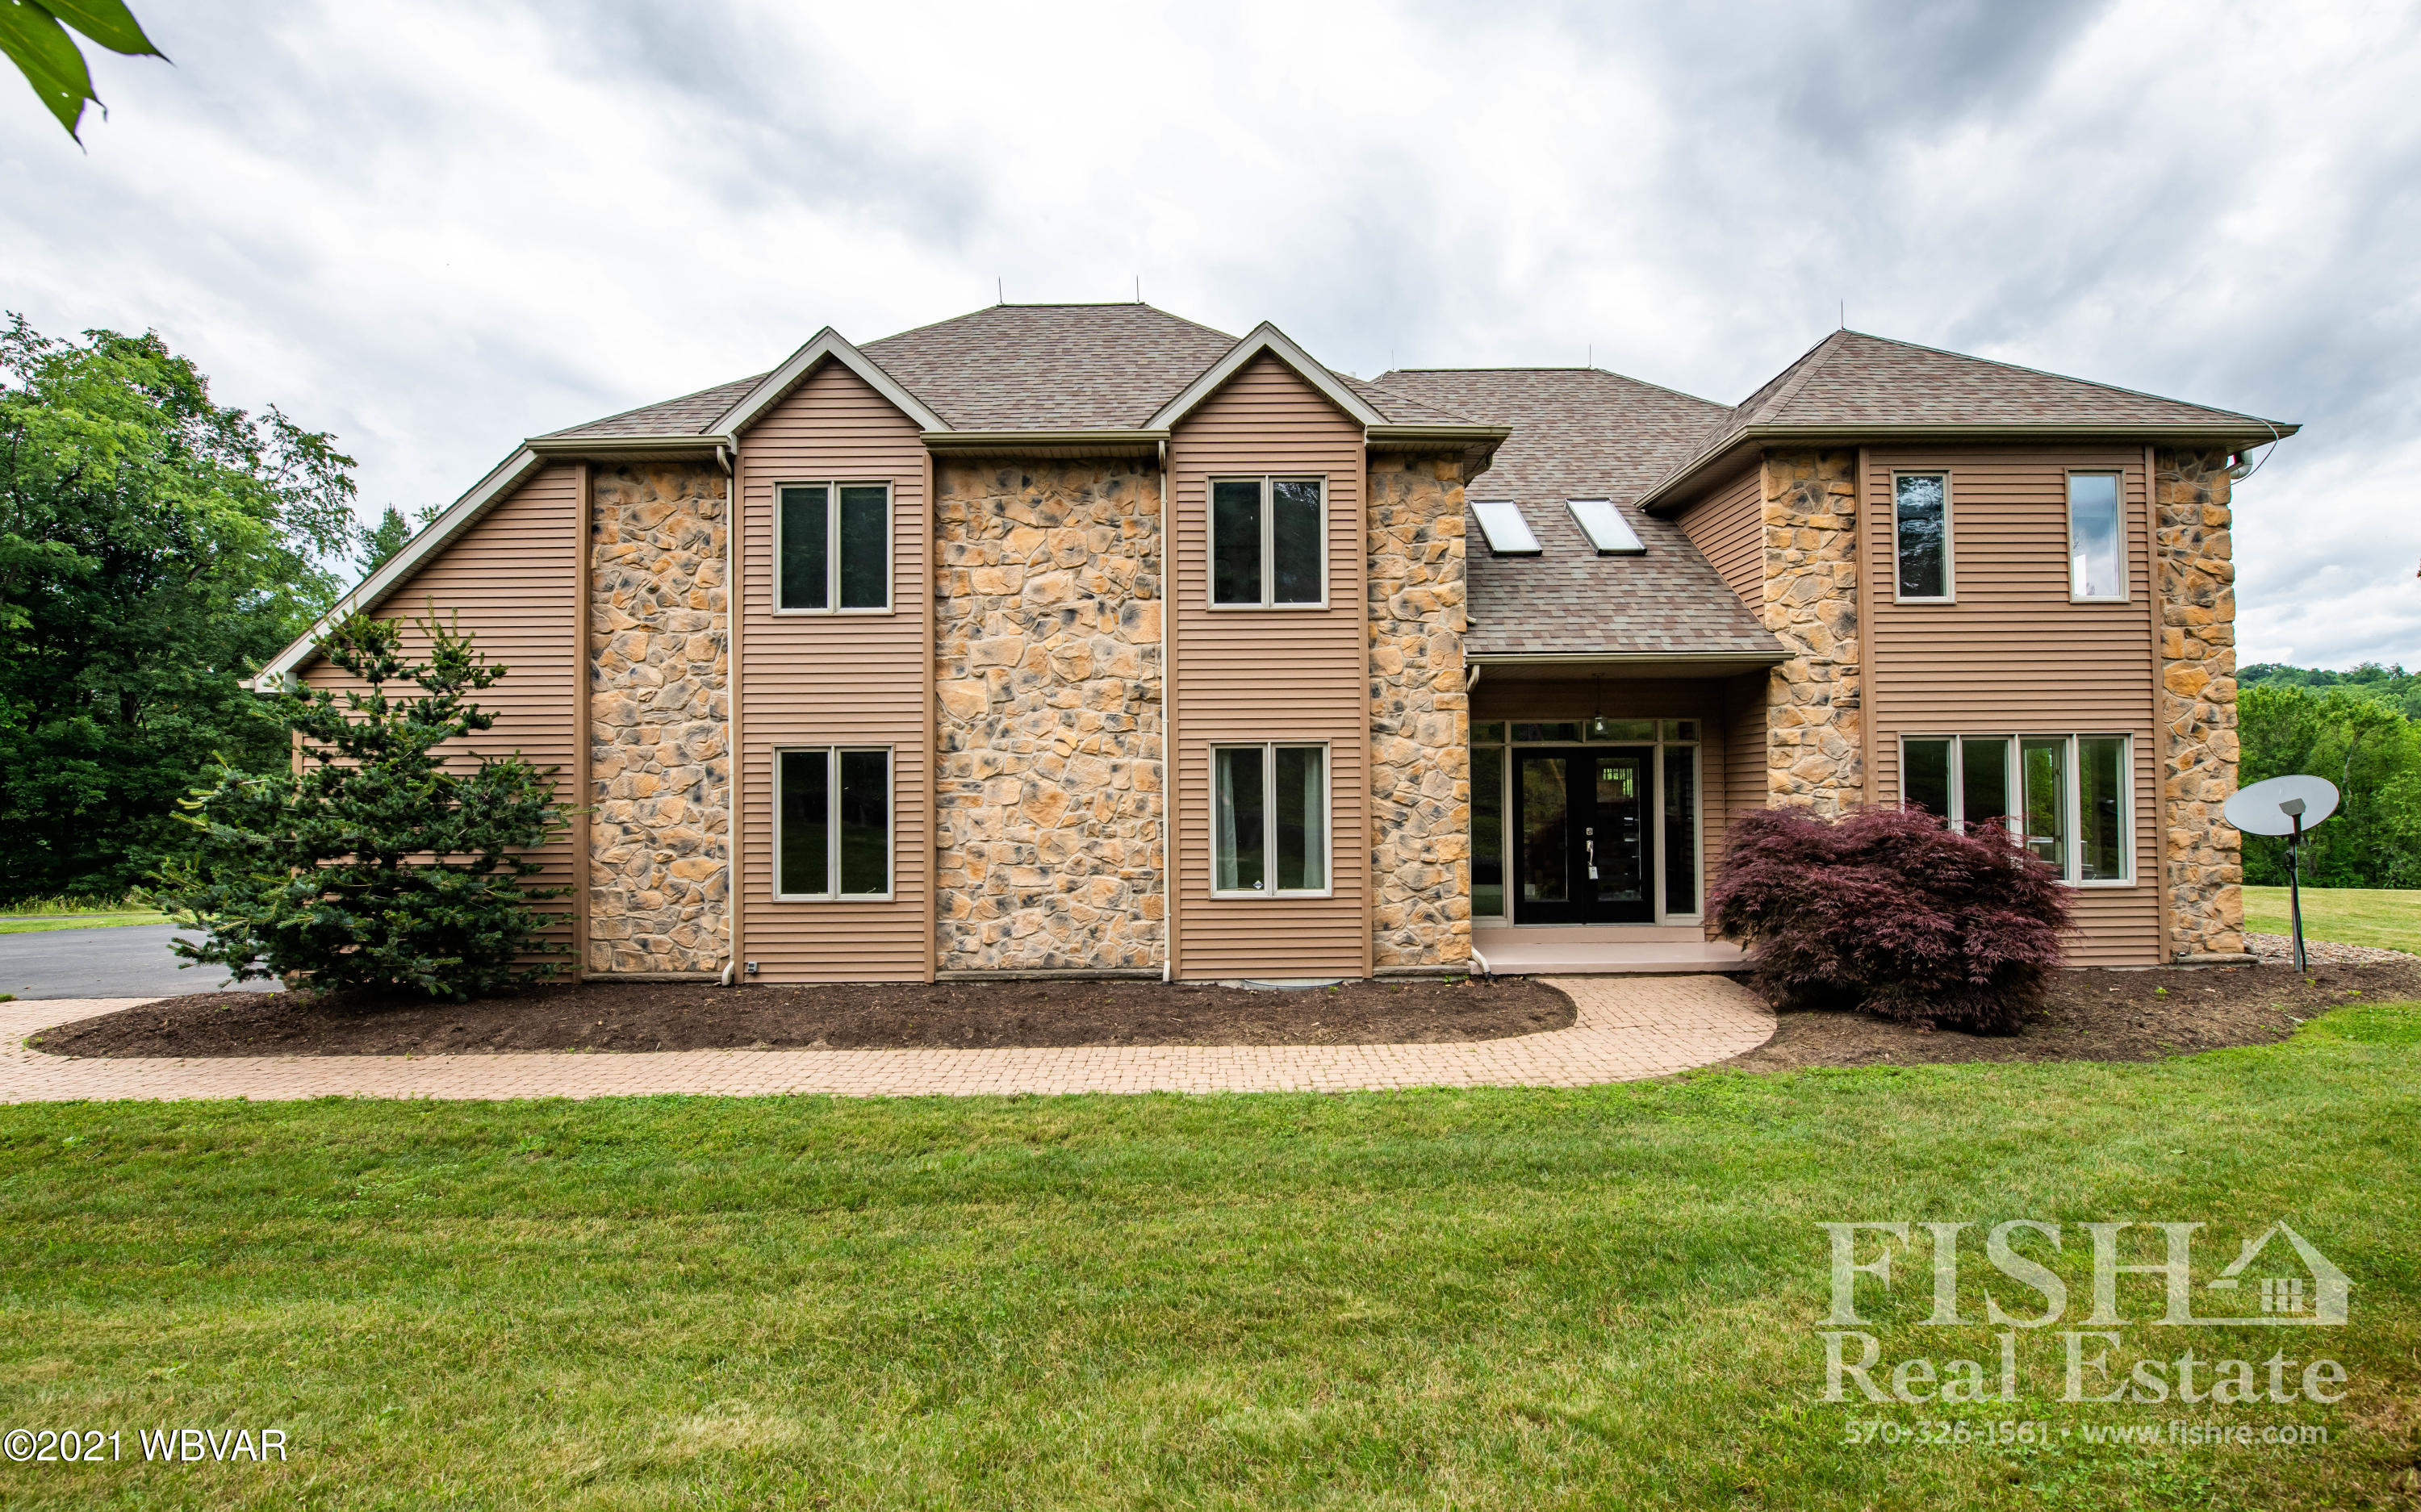 128 GENTRY LANE, Montoursville, PA 17754, 4 Bedrooms Bedrooms, ,4 BathroomsBathrooms,Residential,For sale,GENTRY,WB-92831